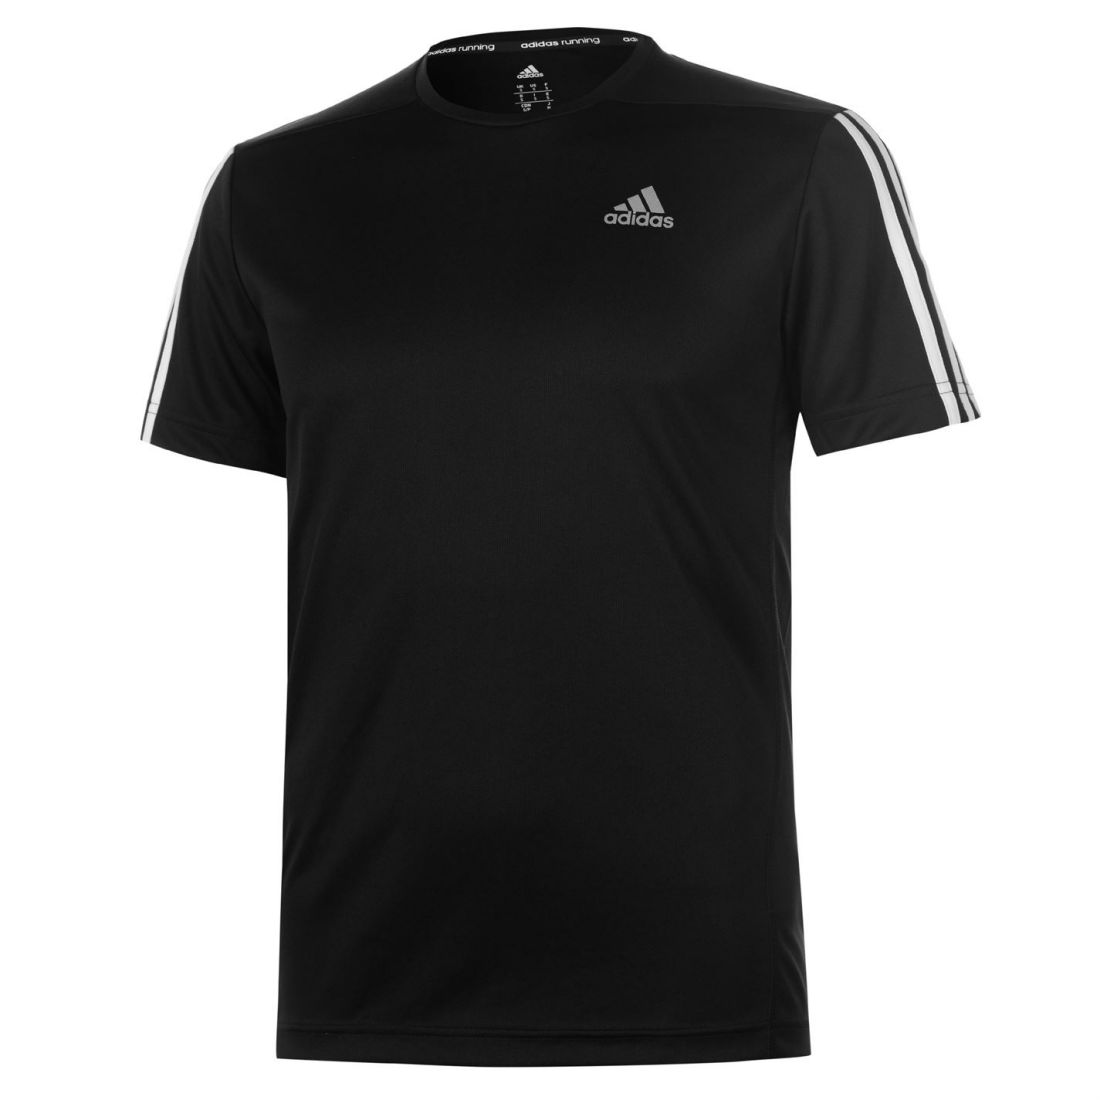 a7df62f8bcce adidas Mens Questar T Shirt Running Tee Tops Sports Clothing Wear ...